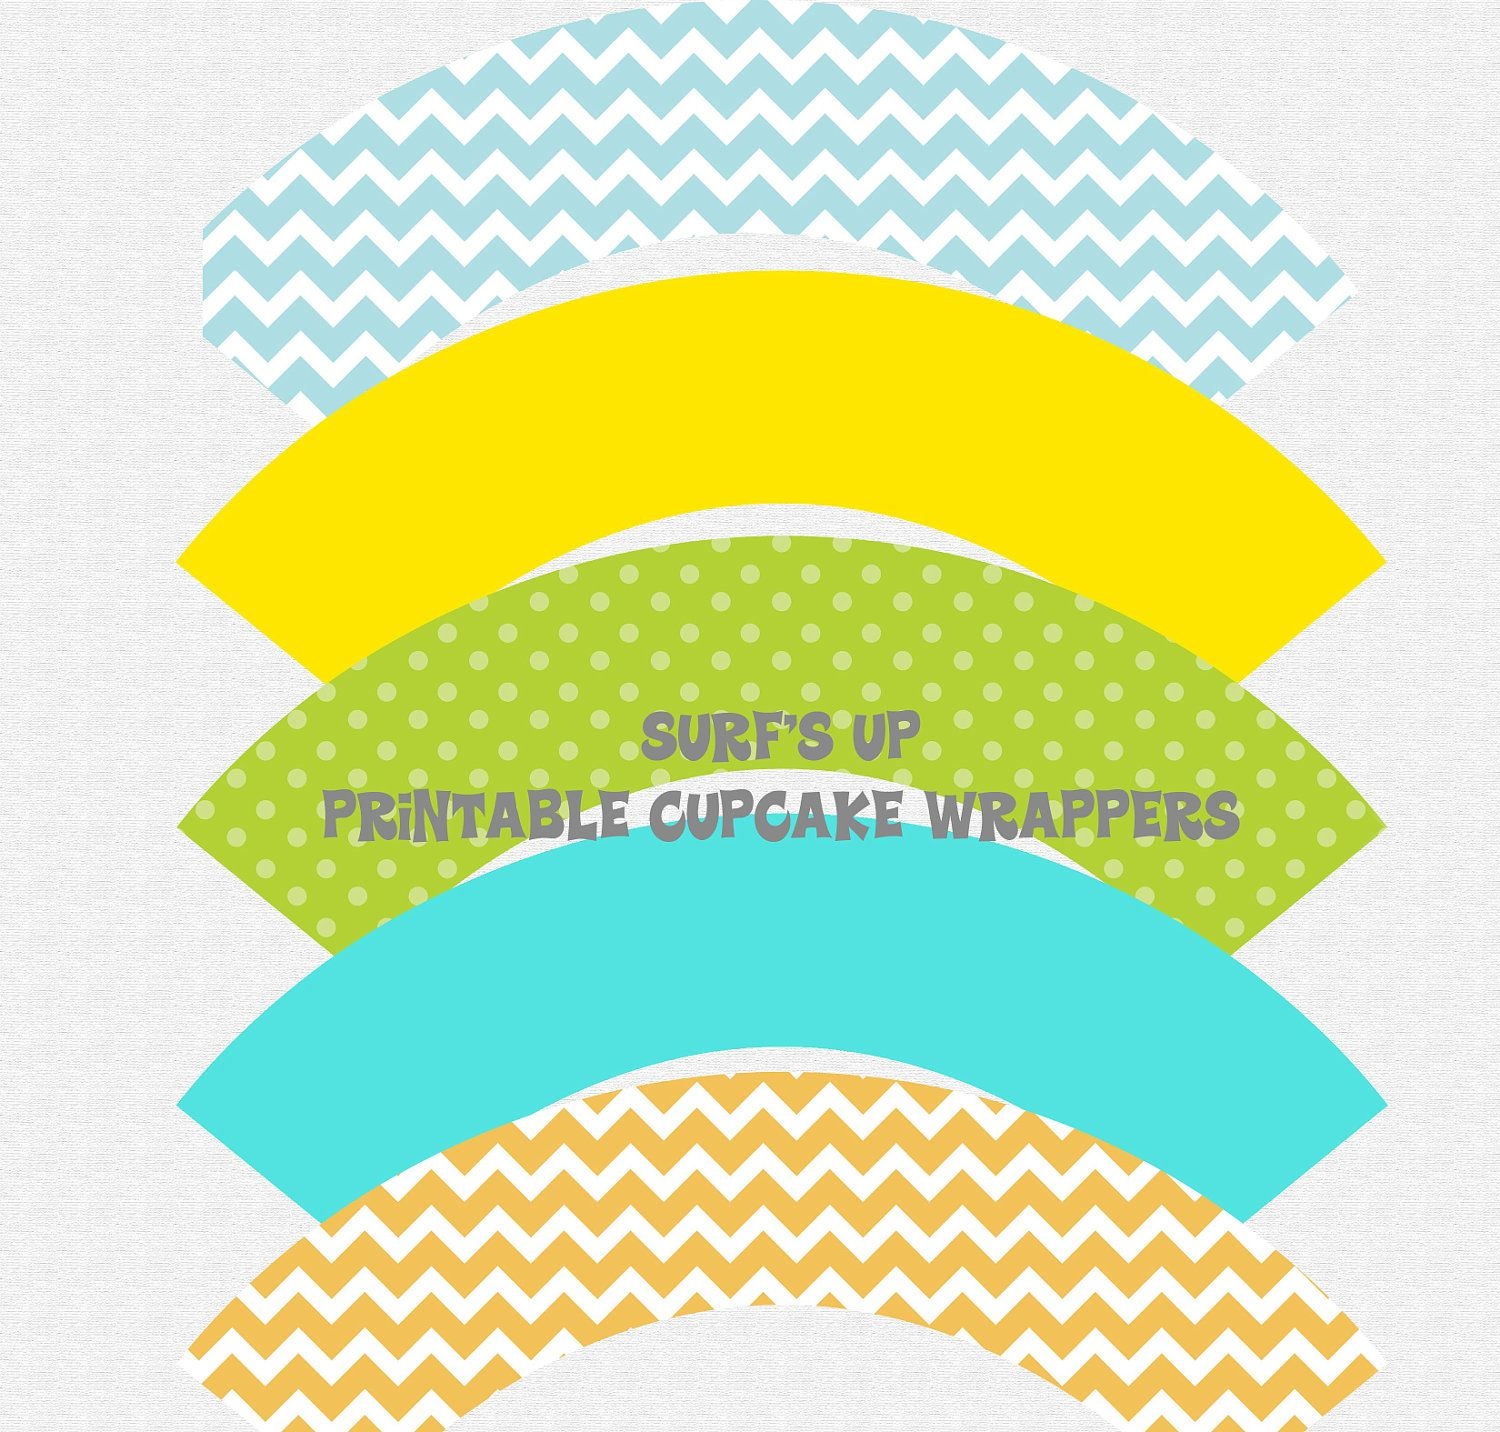 SURF'S UP -- Surf . Swim . Beach . Pool . Cupcake Wrappers for Birthday or Baby Shower -- Printable by TangerinePaperie on Etsy https://www.etsy.com/listing/104708500/surfs-up-surf-swim-beach-pool-cupcake